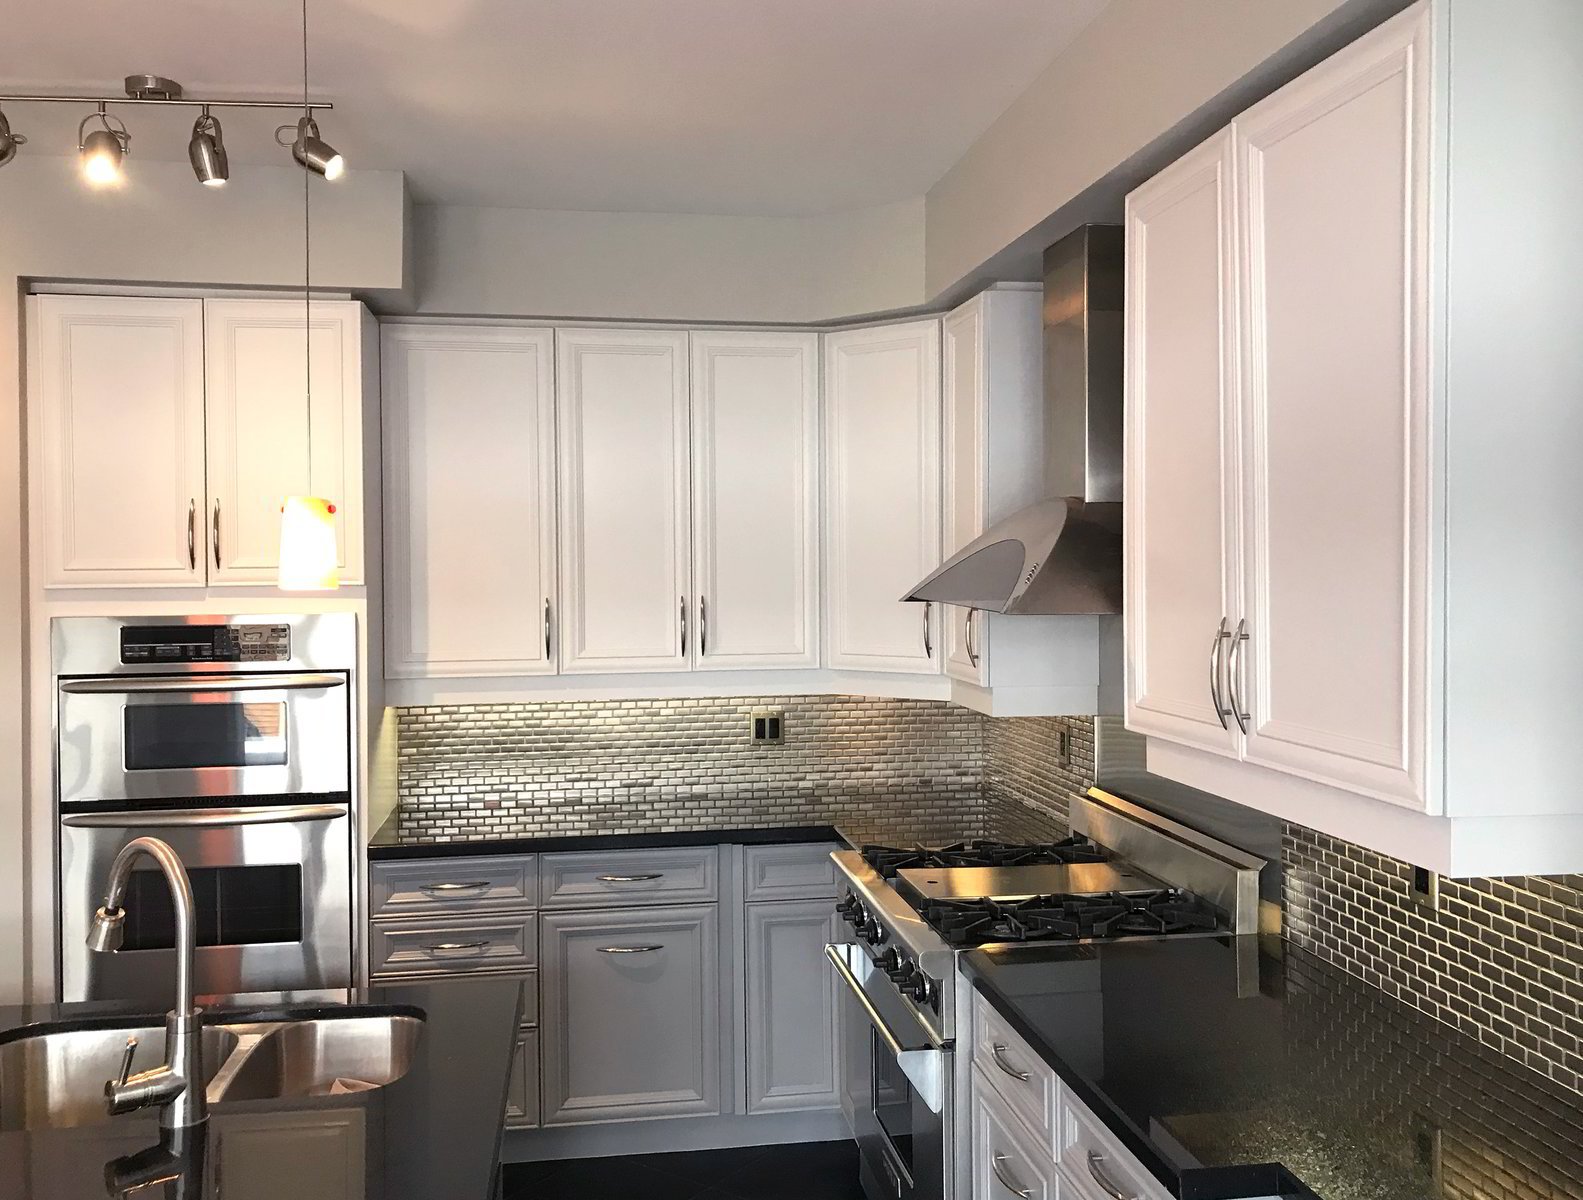 Newly painted white kitchen cabinets